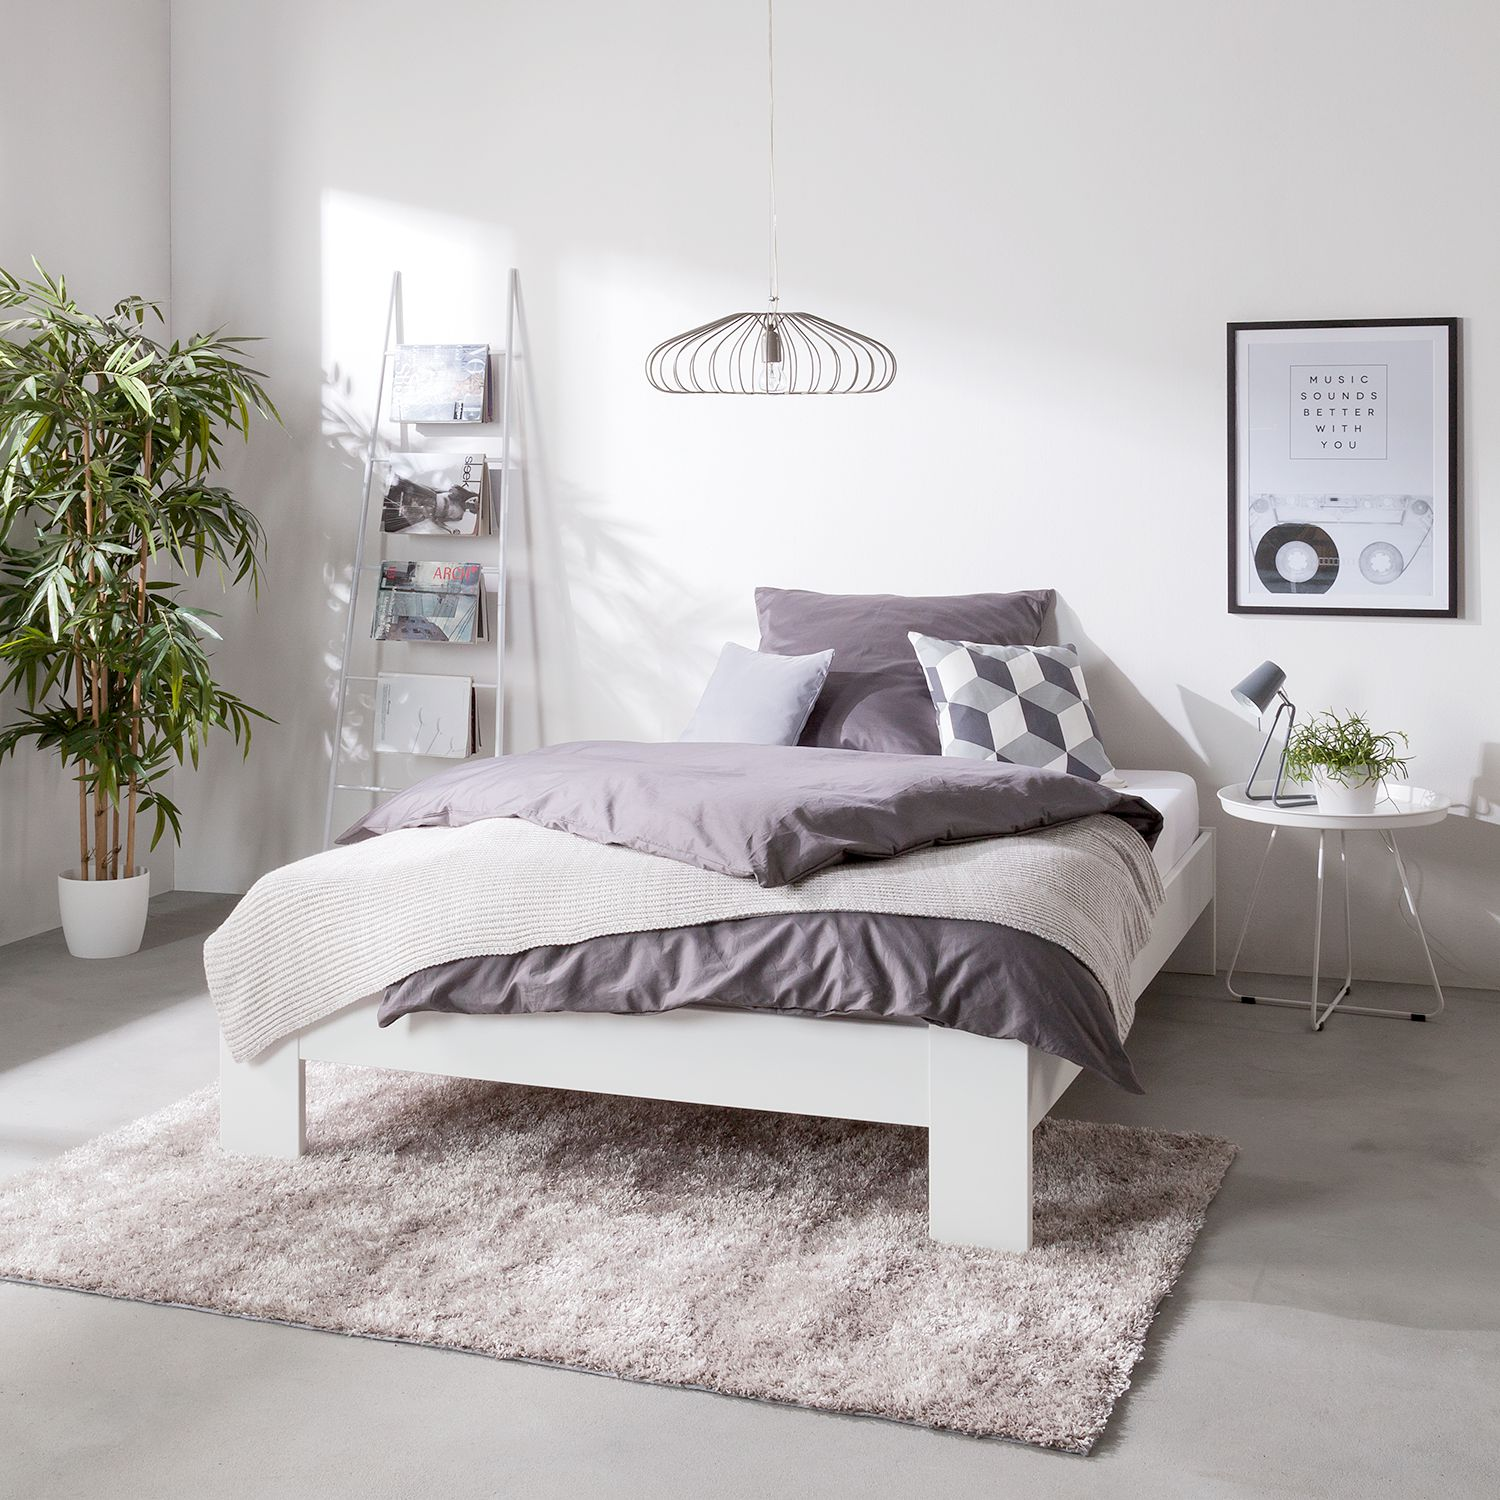 Bed Rachel, Home Design